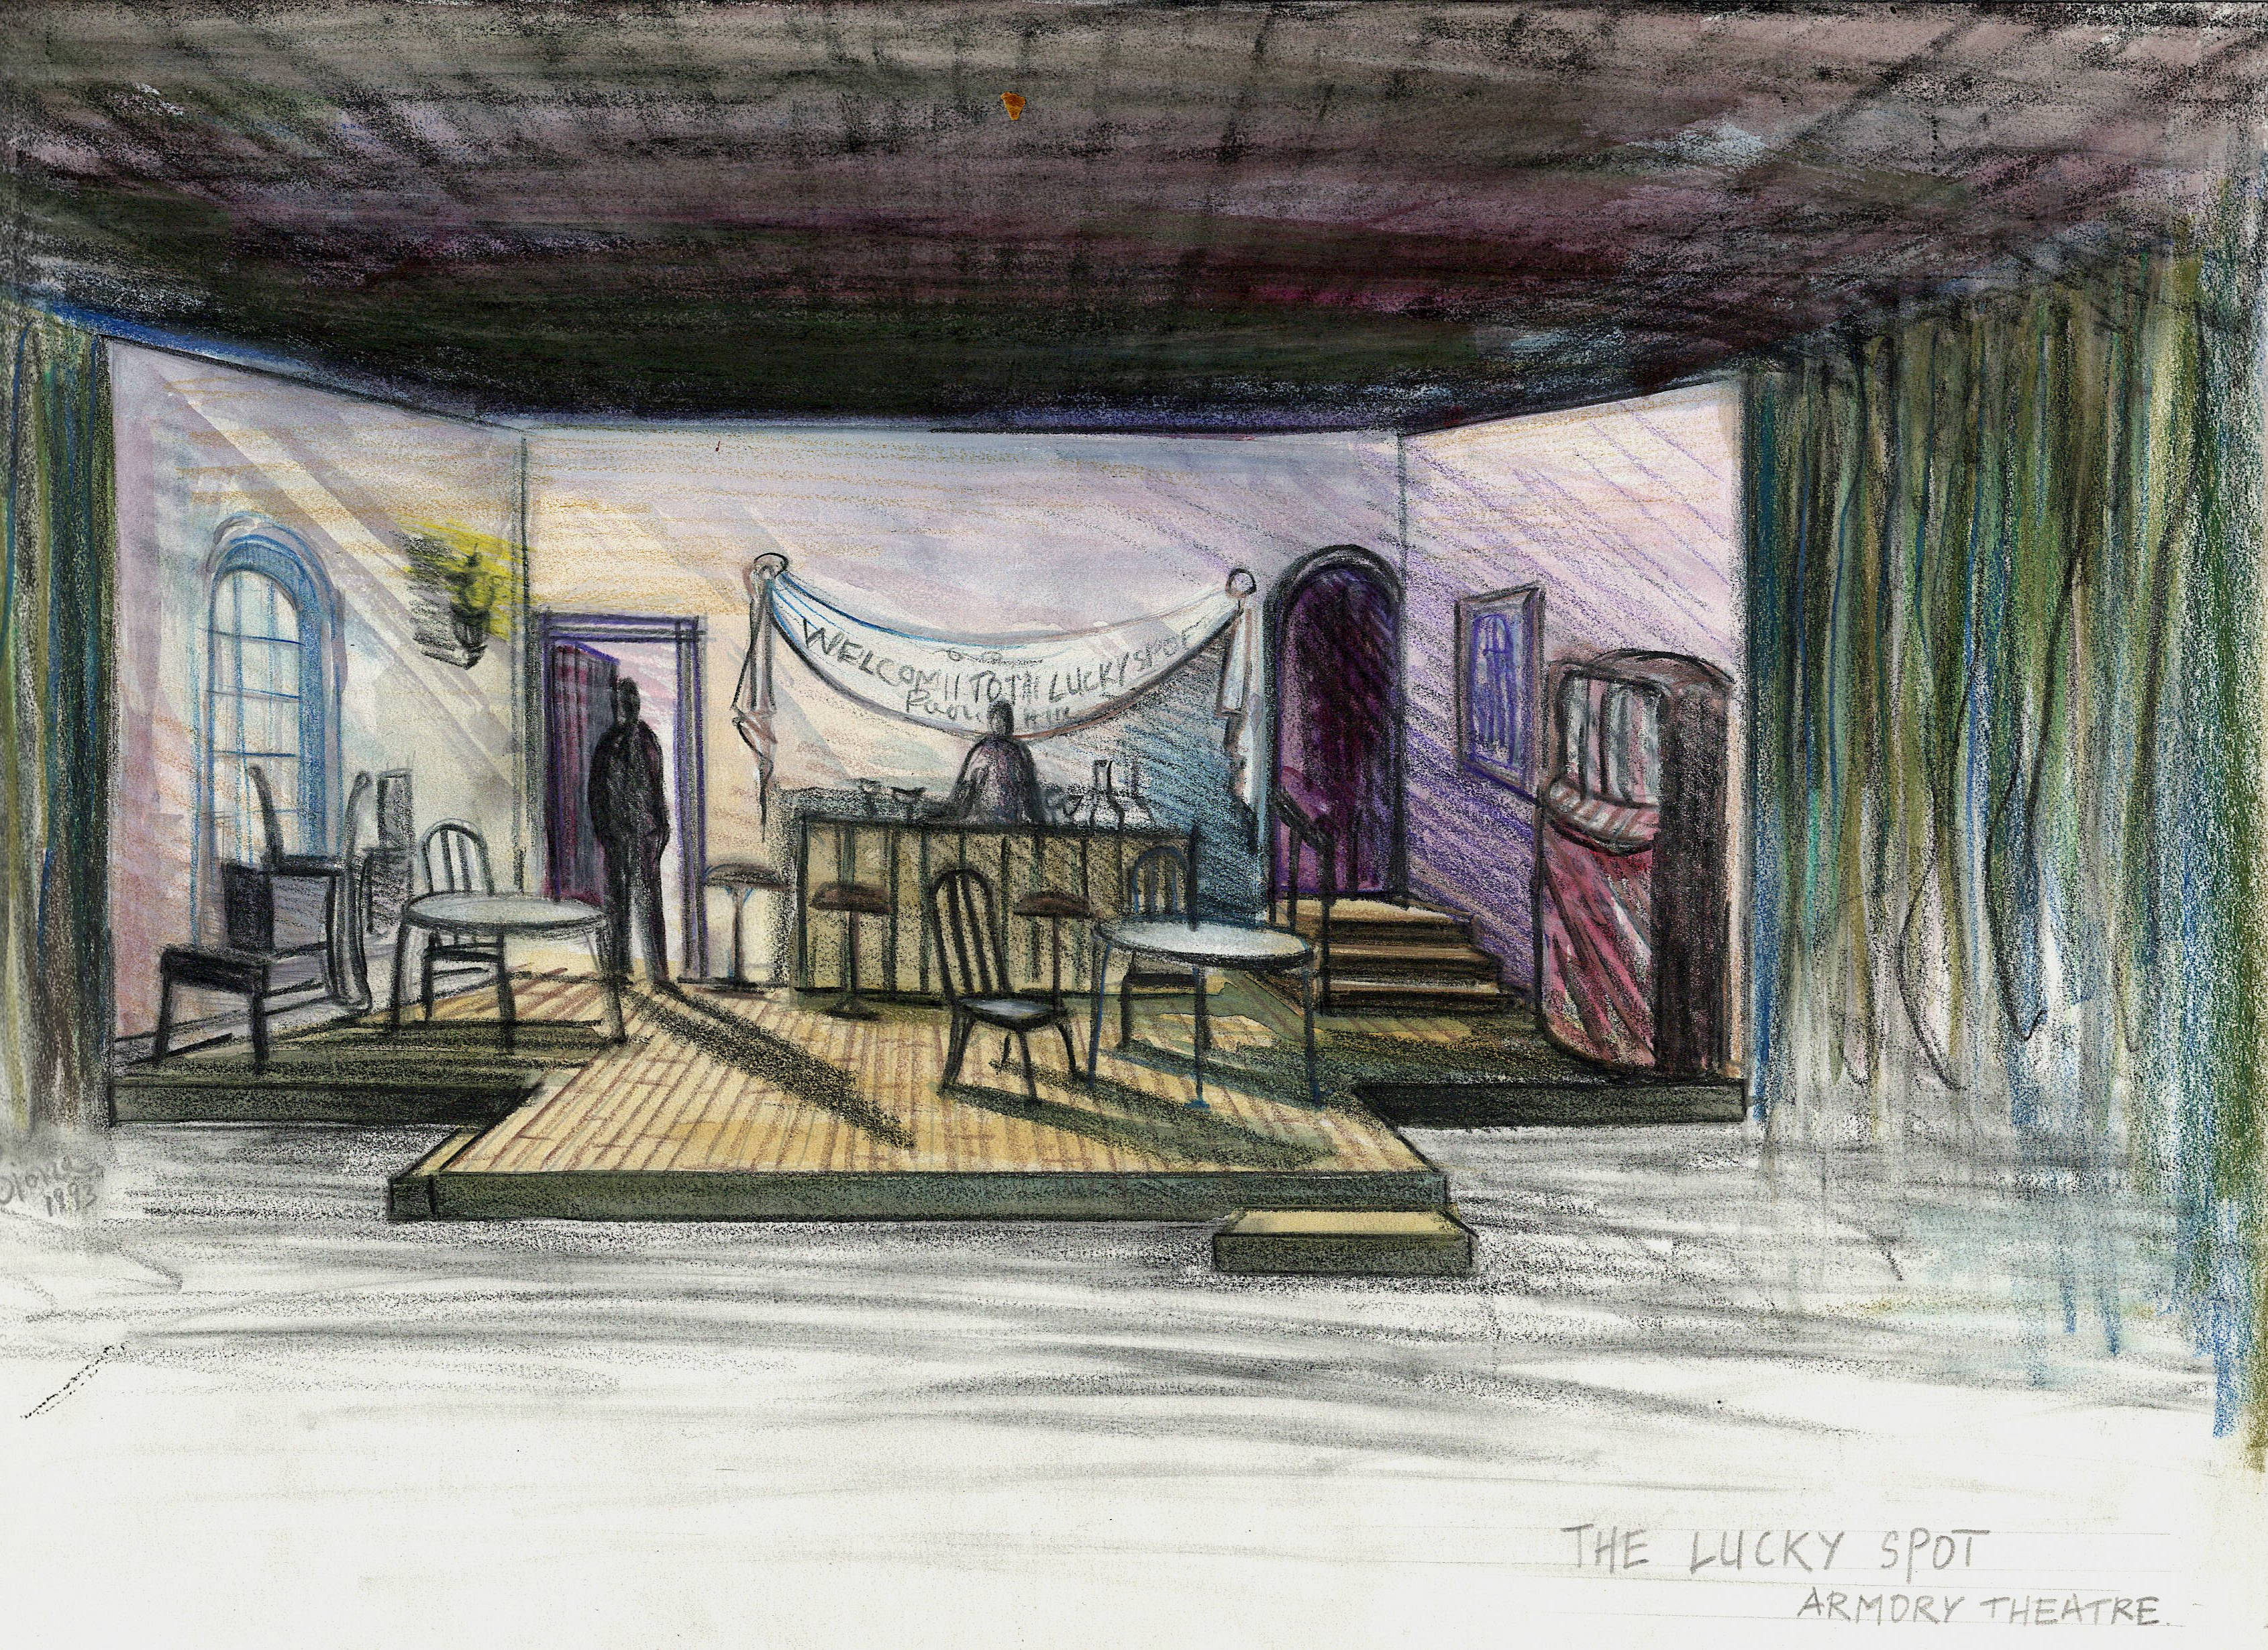 The Lucky Spot by Beth Henley at the Armory theater, Champaign Illinois